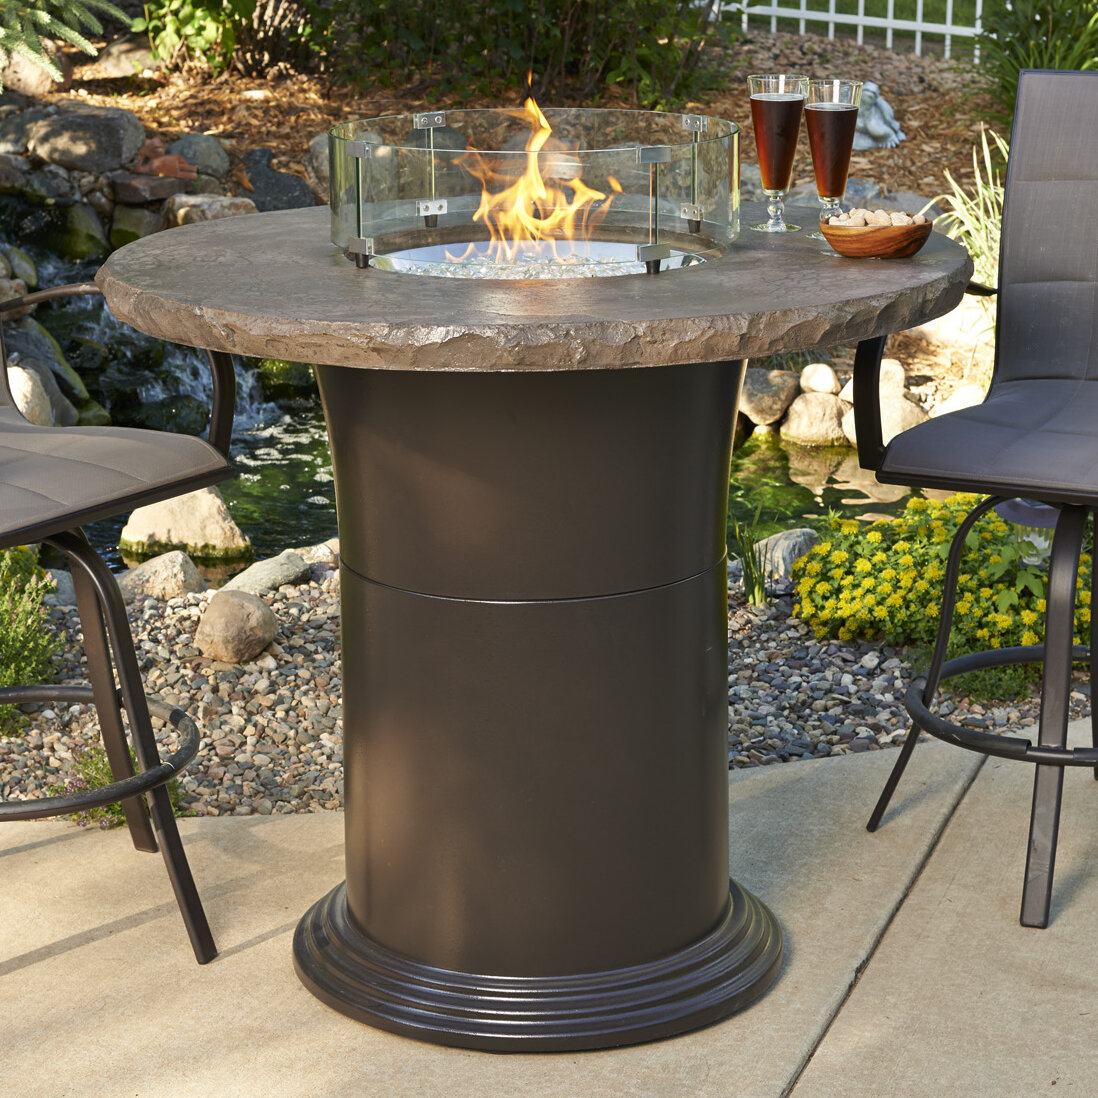 The outdoor greatroom company fire pit guard ebay for Great outdoor room company